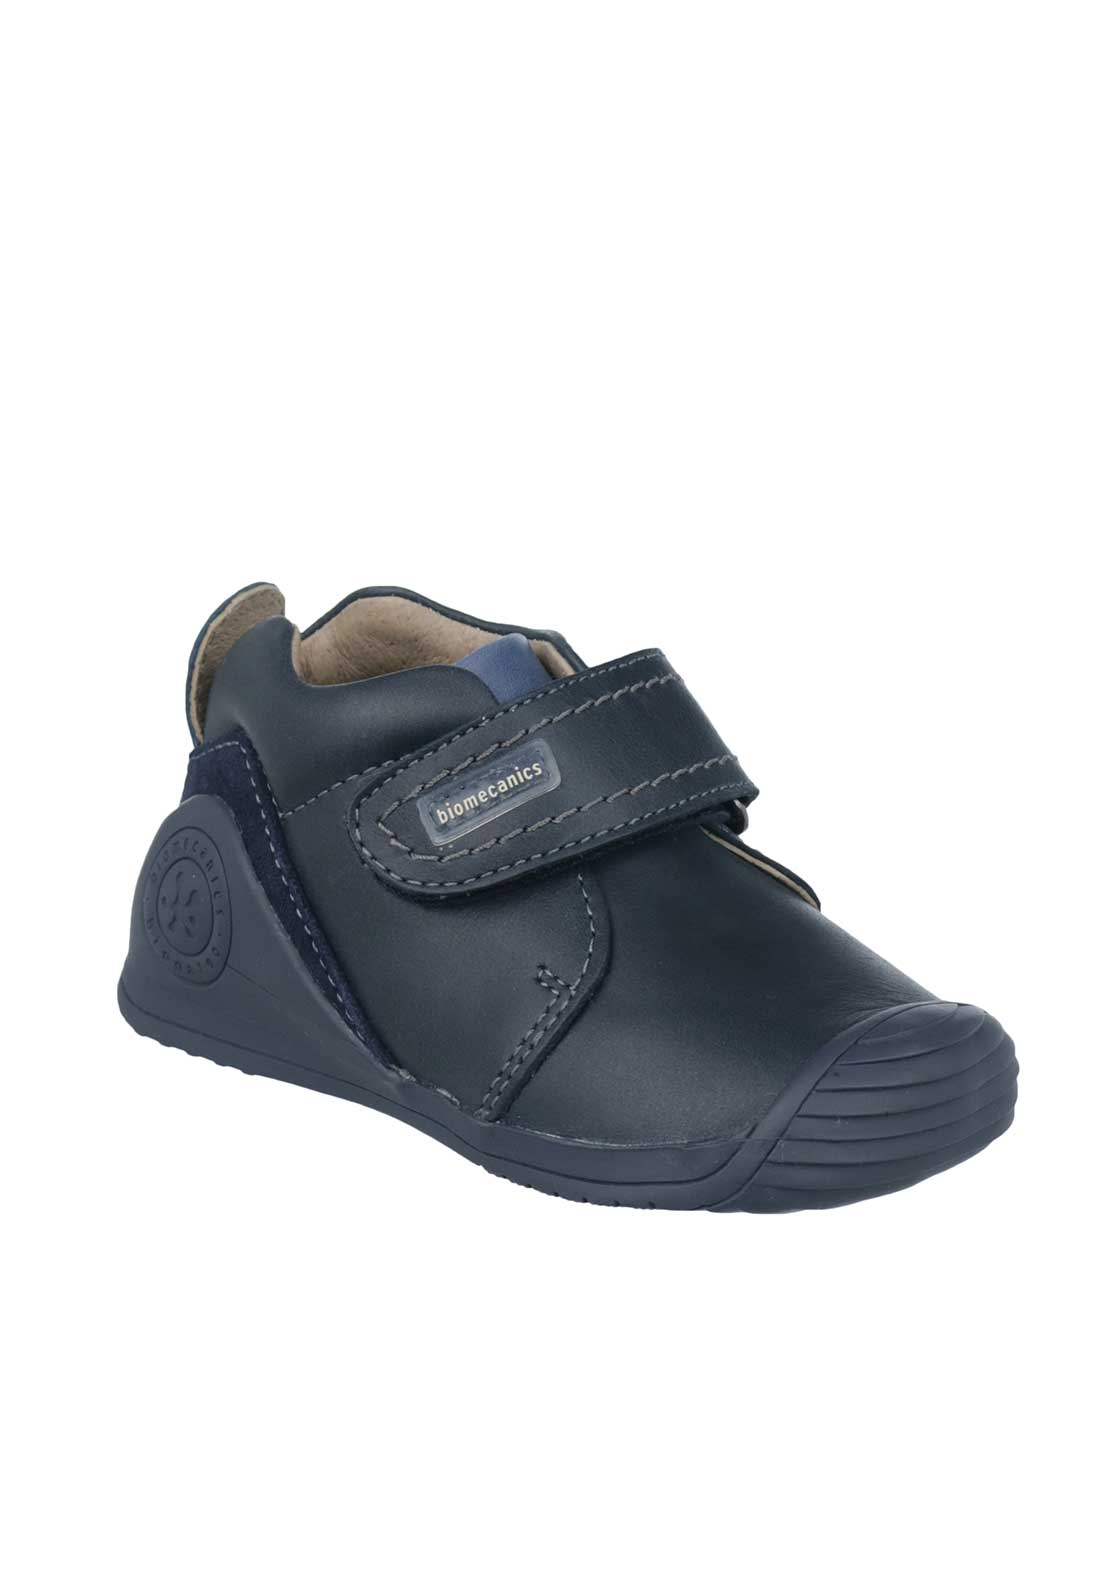 Biomecanics Baby Boys Biogateo Crawling Shoes, Navy